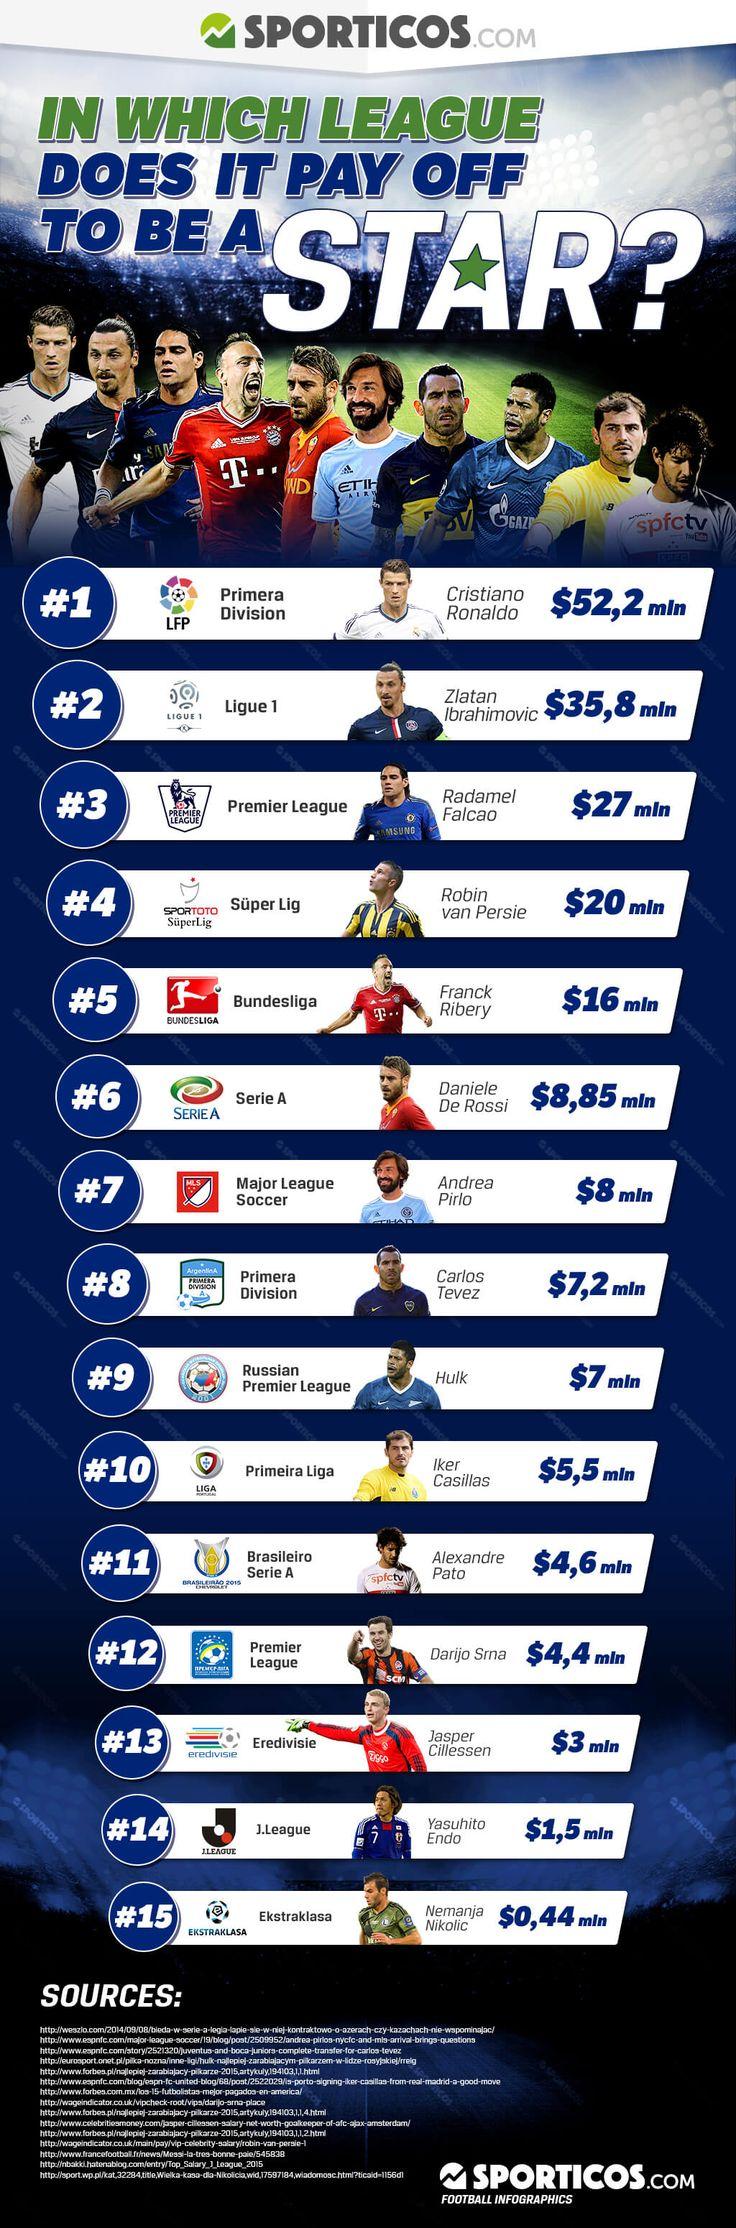 In which league does it pay off to be a star? - infographic - Sporticos.com